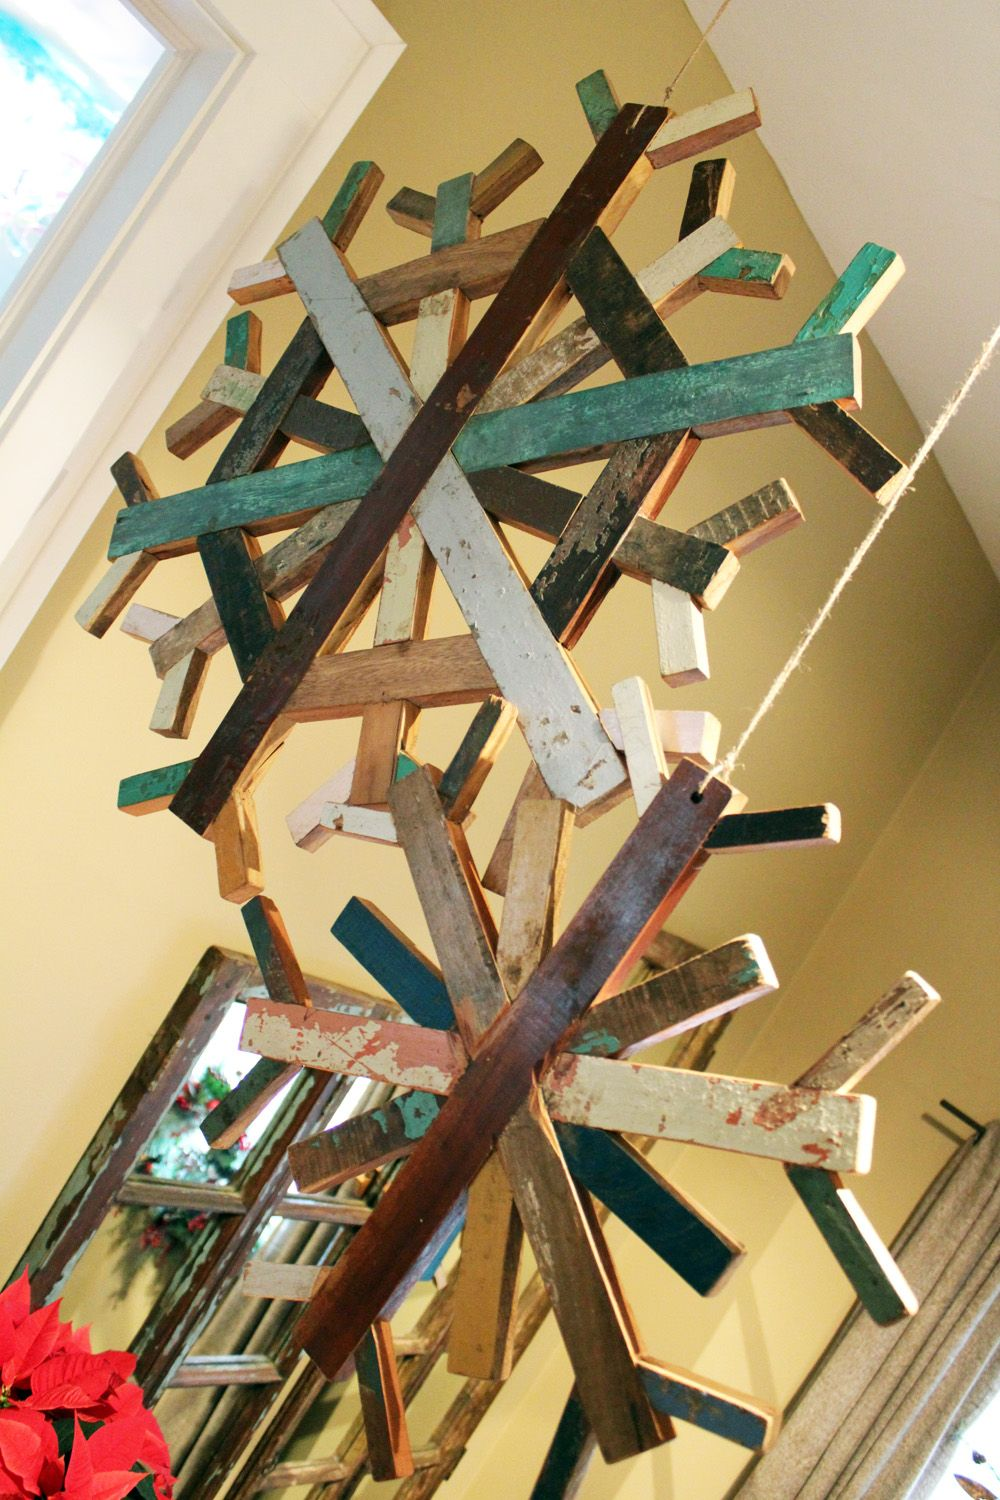 More from the 2012 bachman 39 s holiday ideas house part 2 for Craft bits and pieces